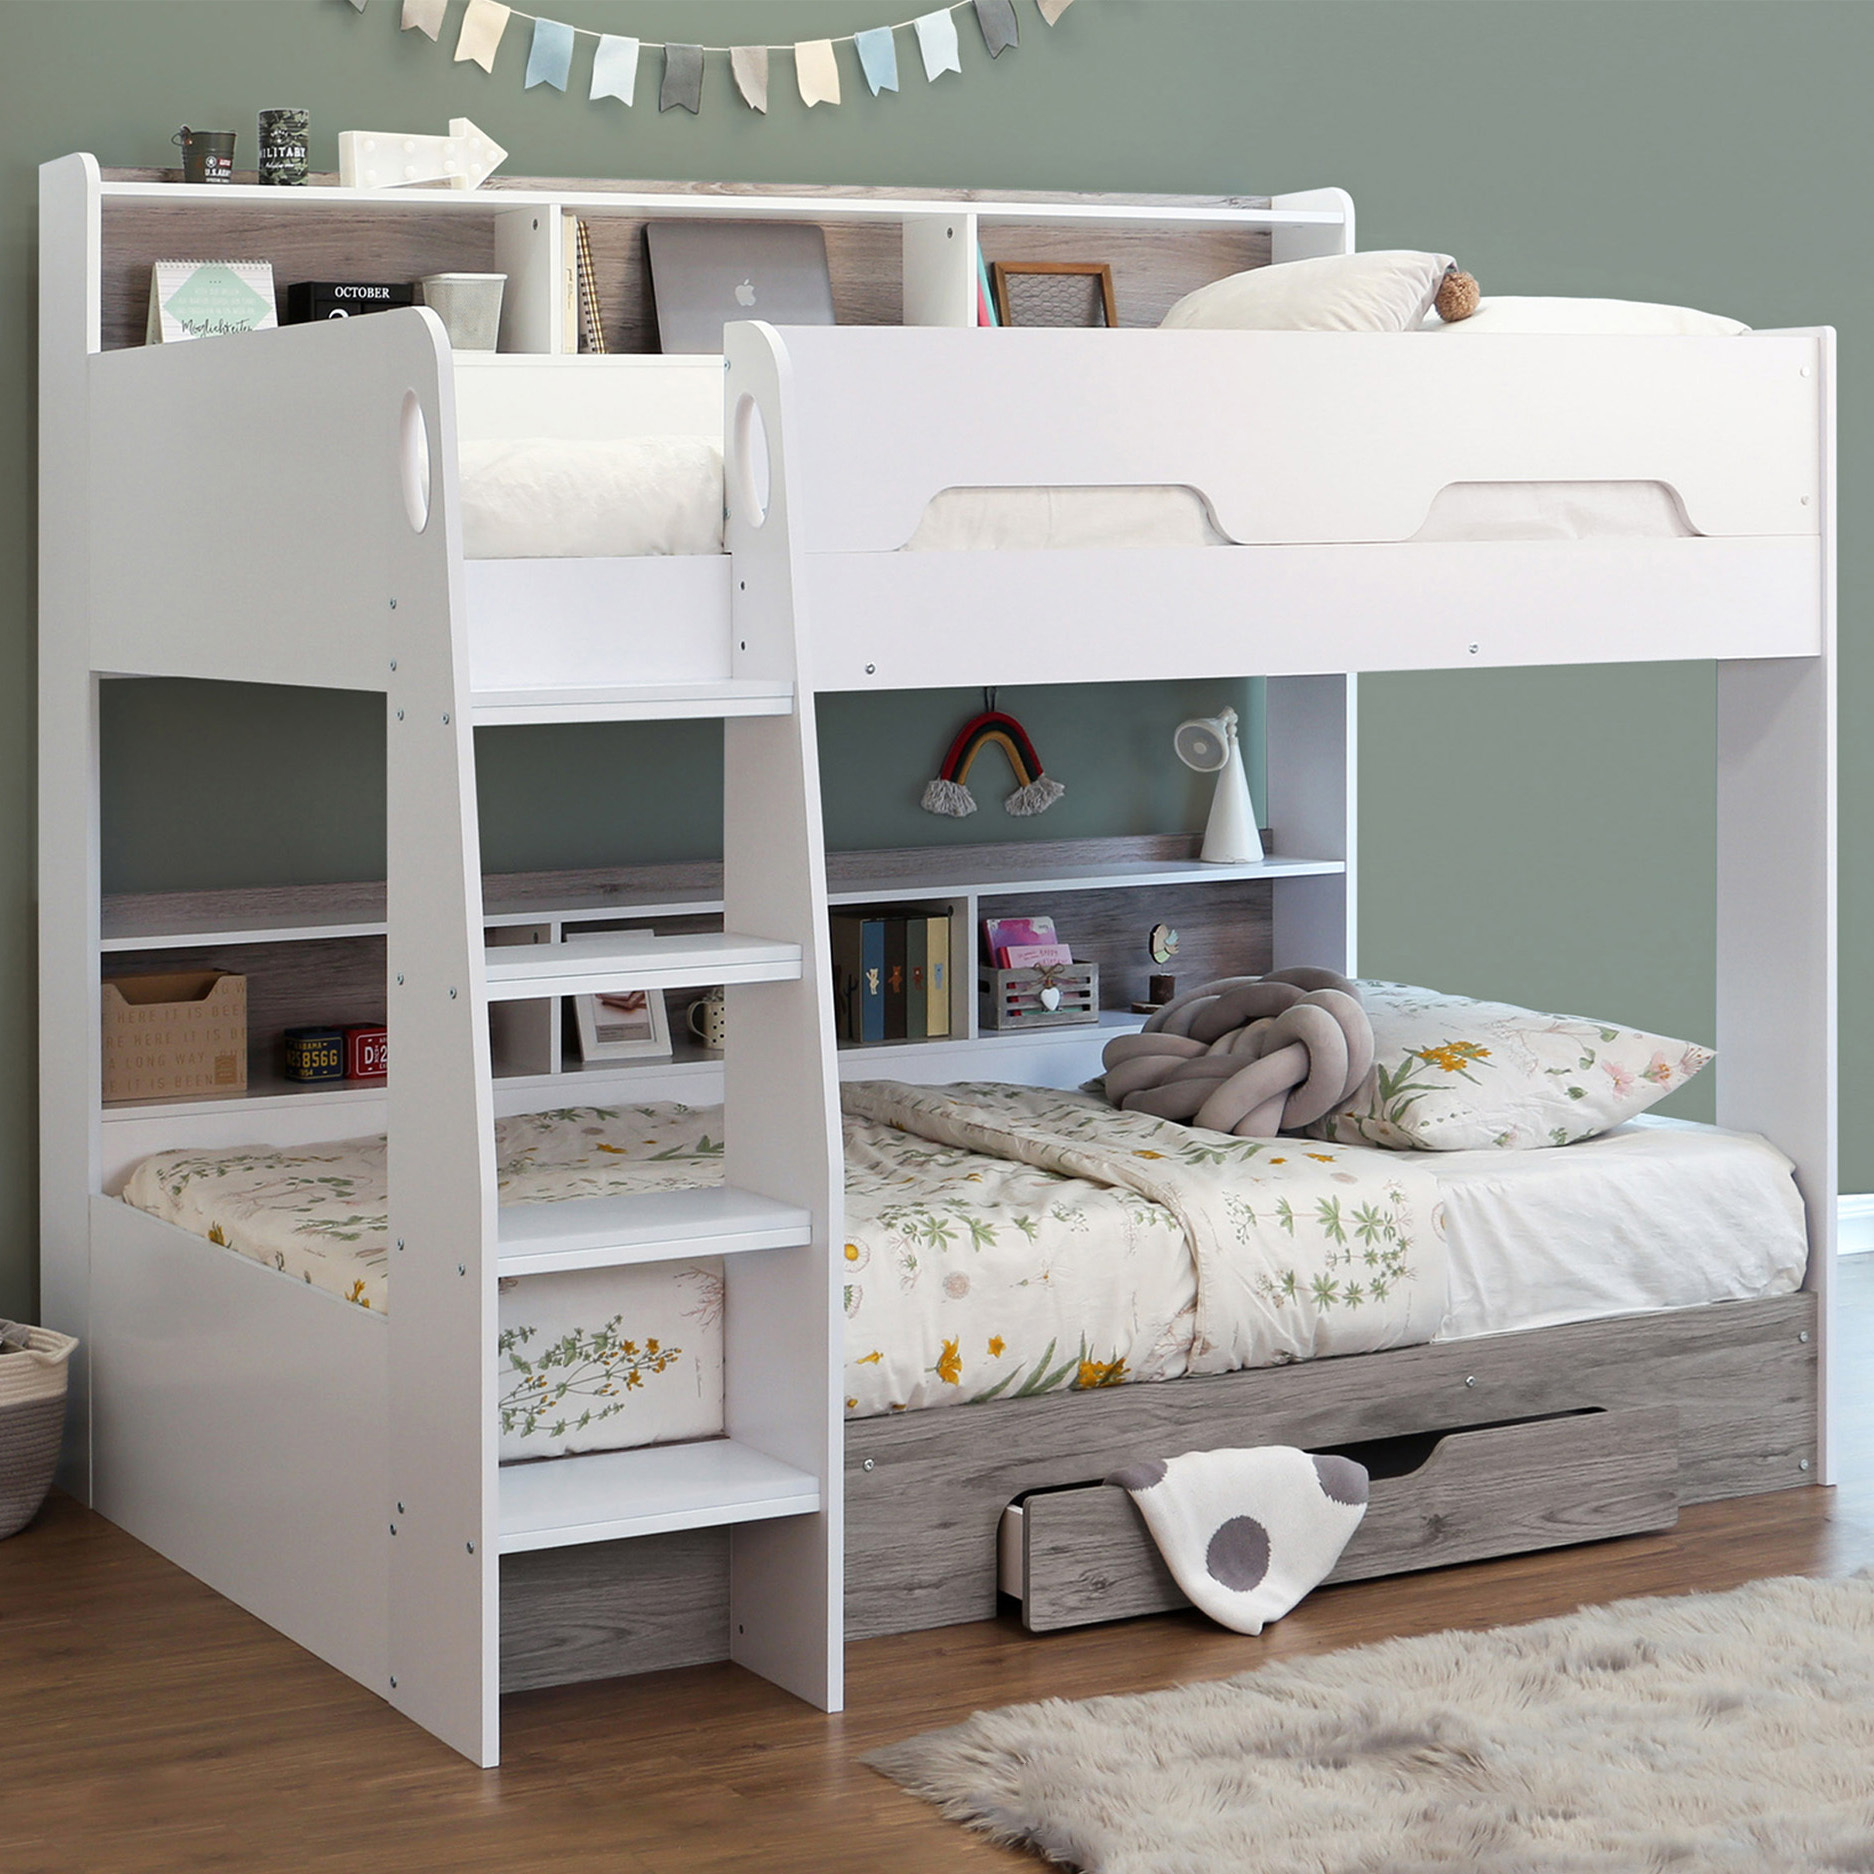 Picture of: Castles Single Library Bunk Storage Draw Out Of The Cot